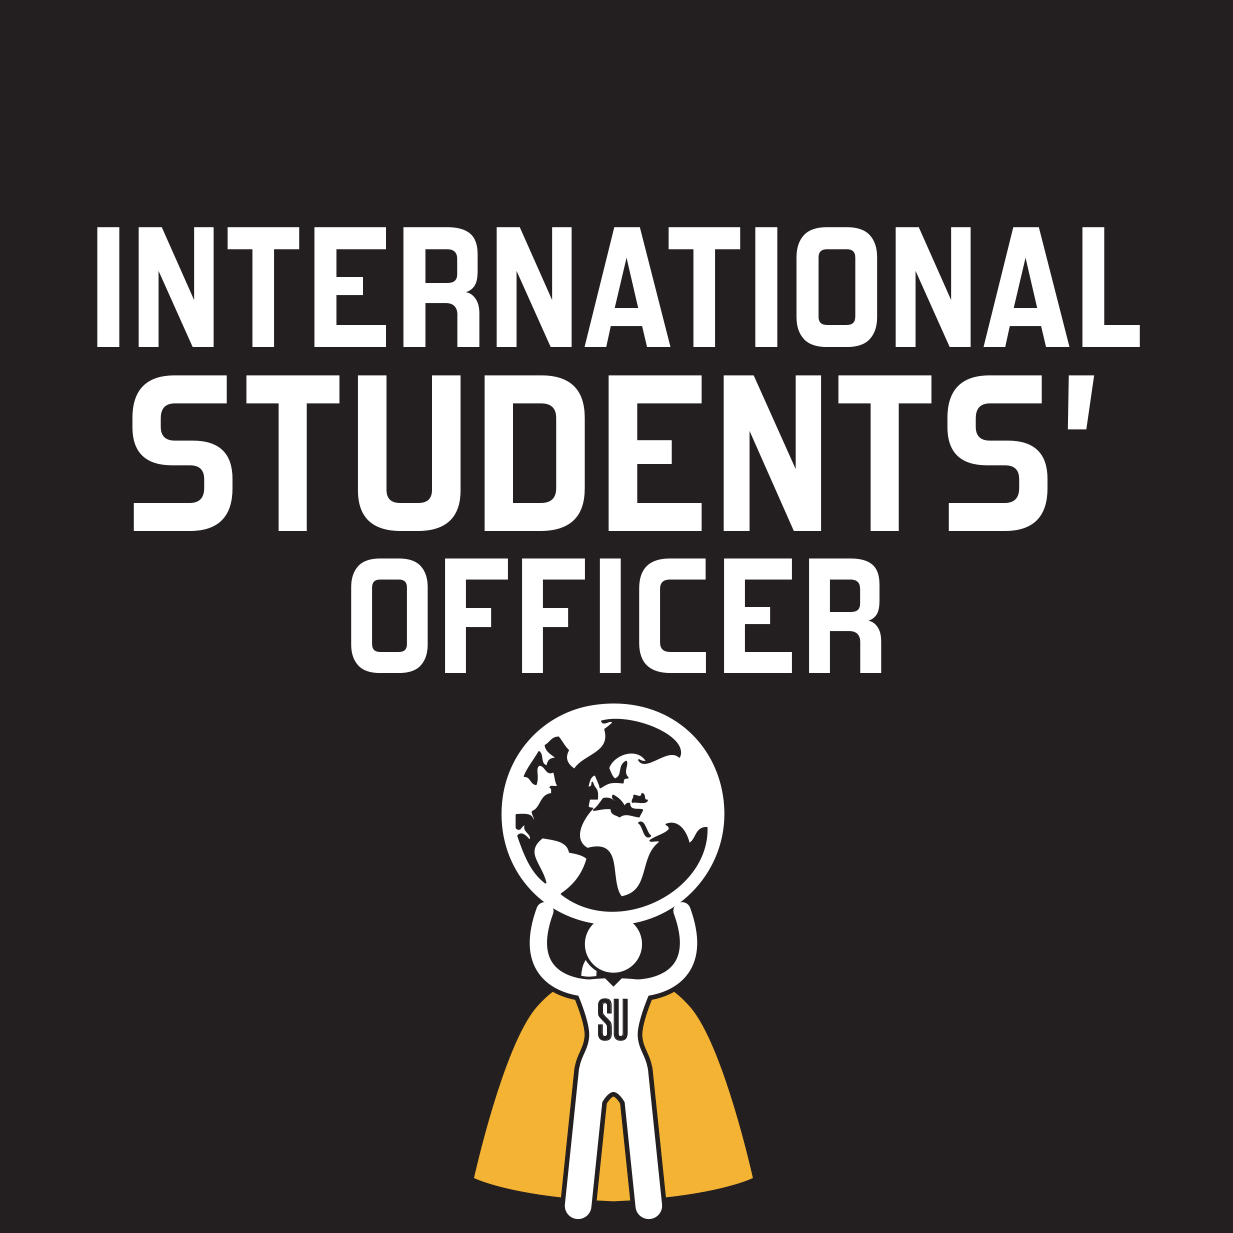 Graphic image representing International Students' Officer